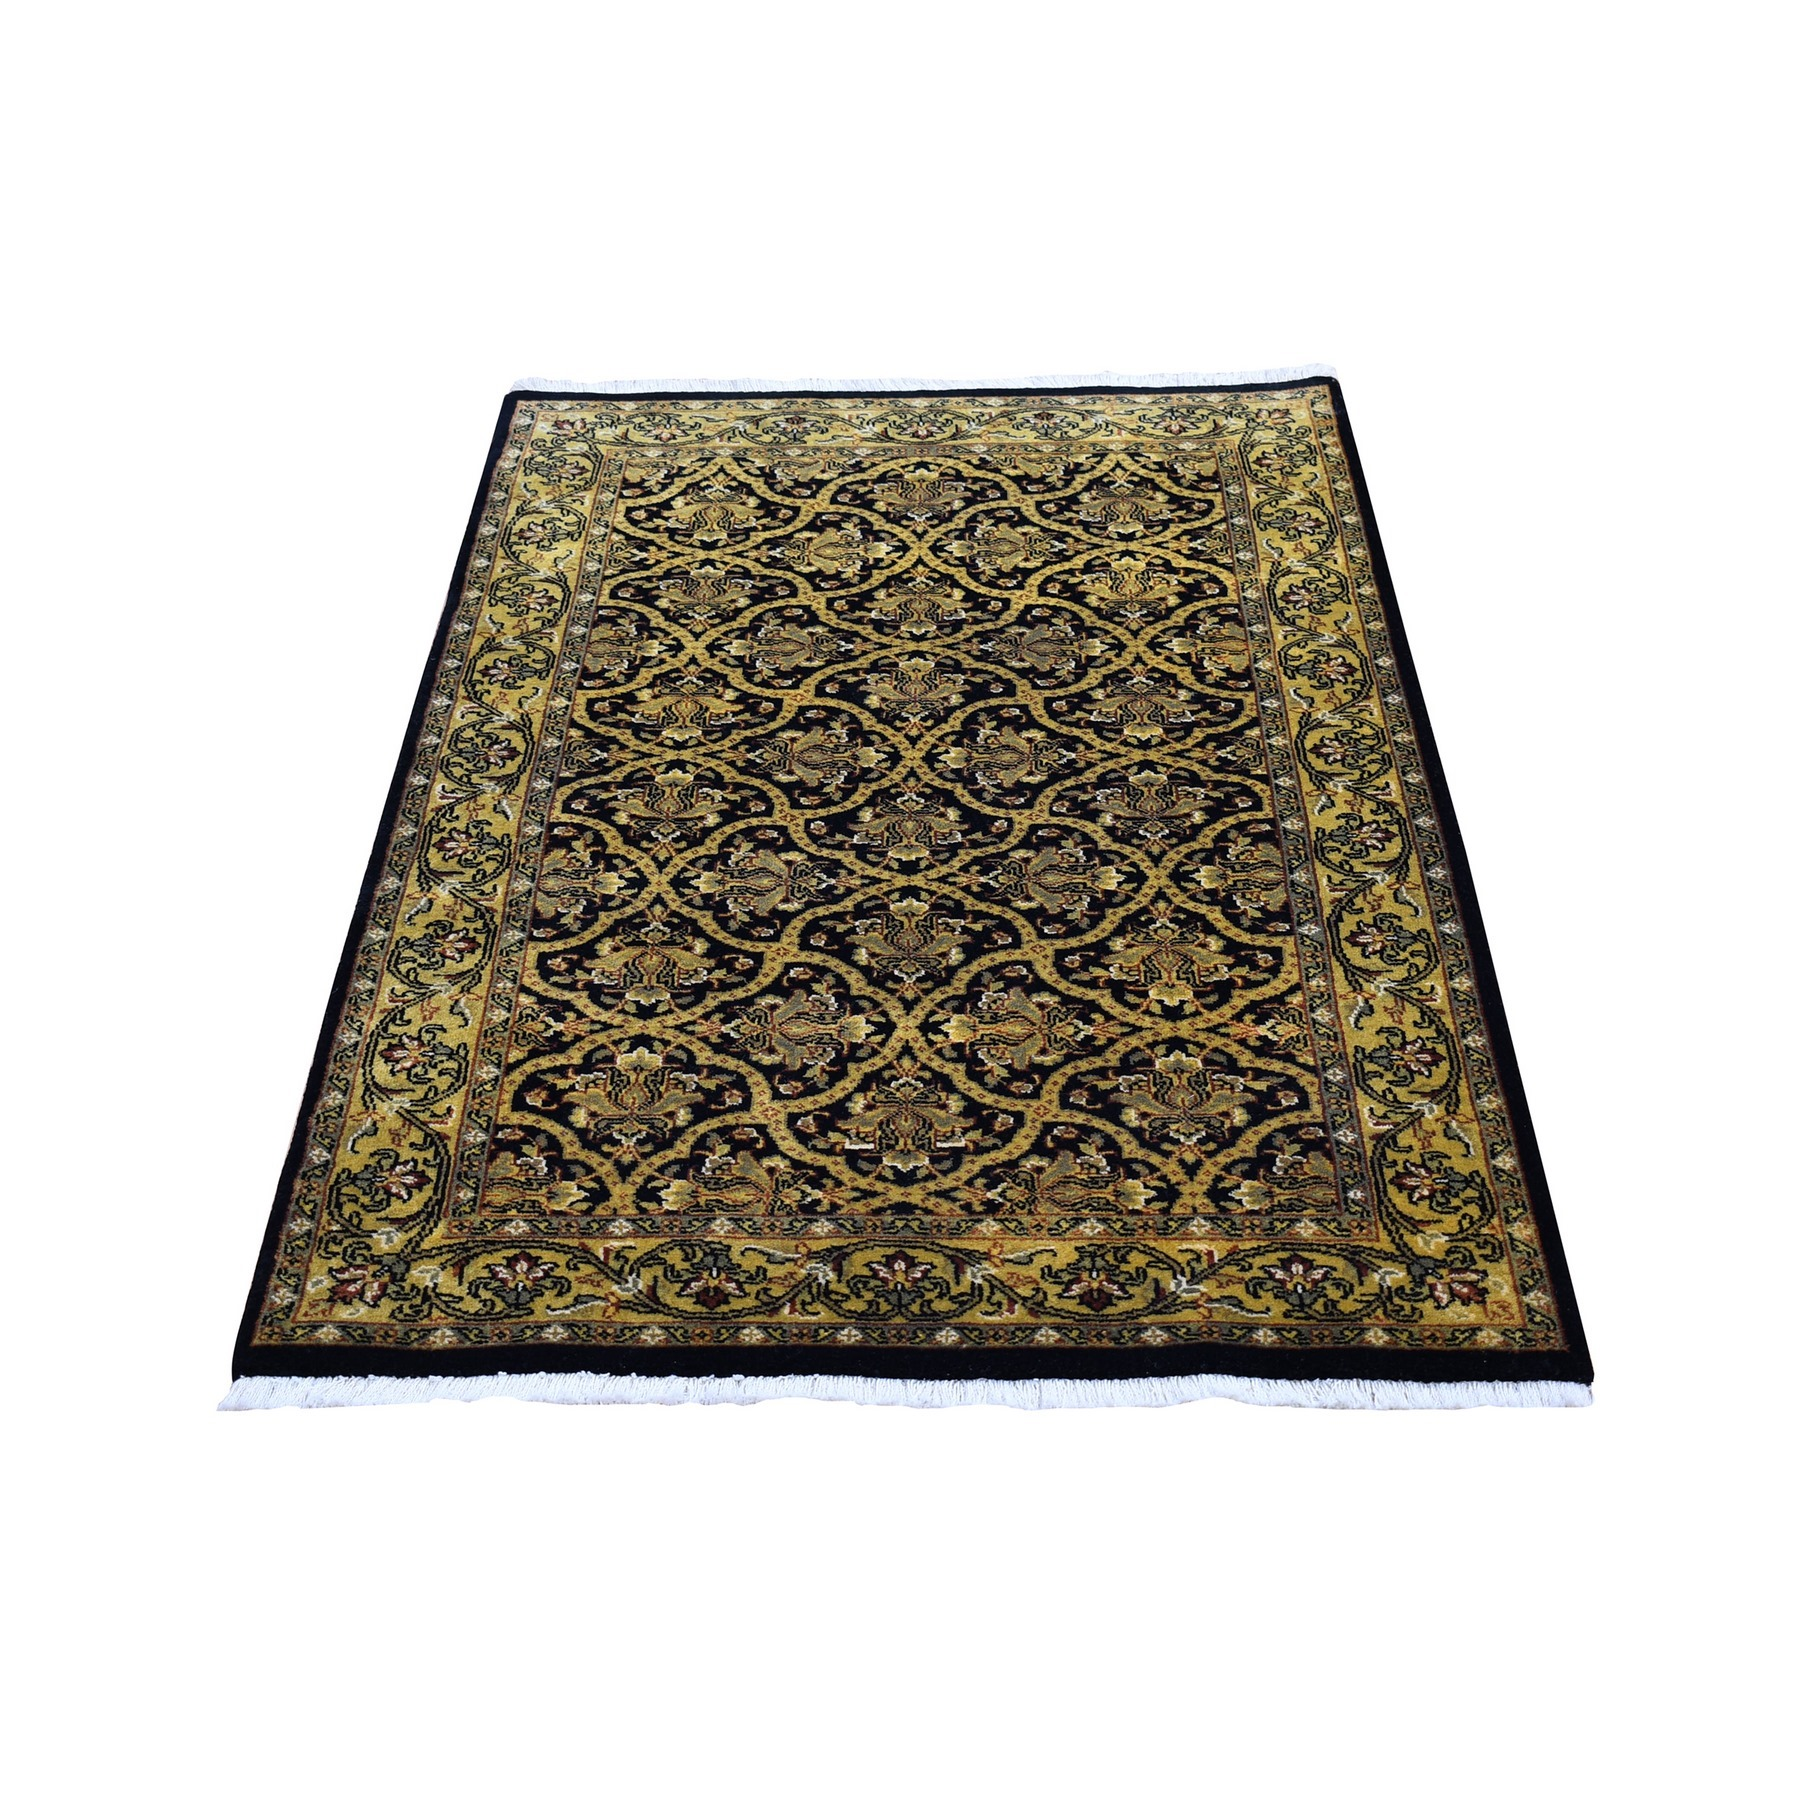 "3'x4'10"" Super Fine Persian All Over Design Black and Gold Pure Wool Hand Knotted Oriental Rug"